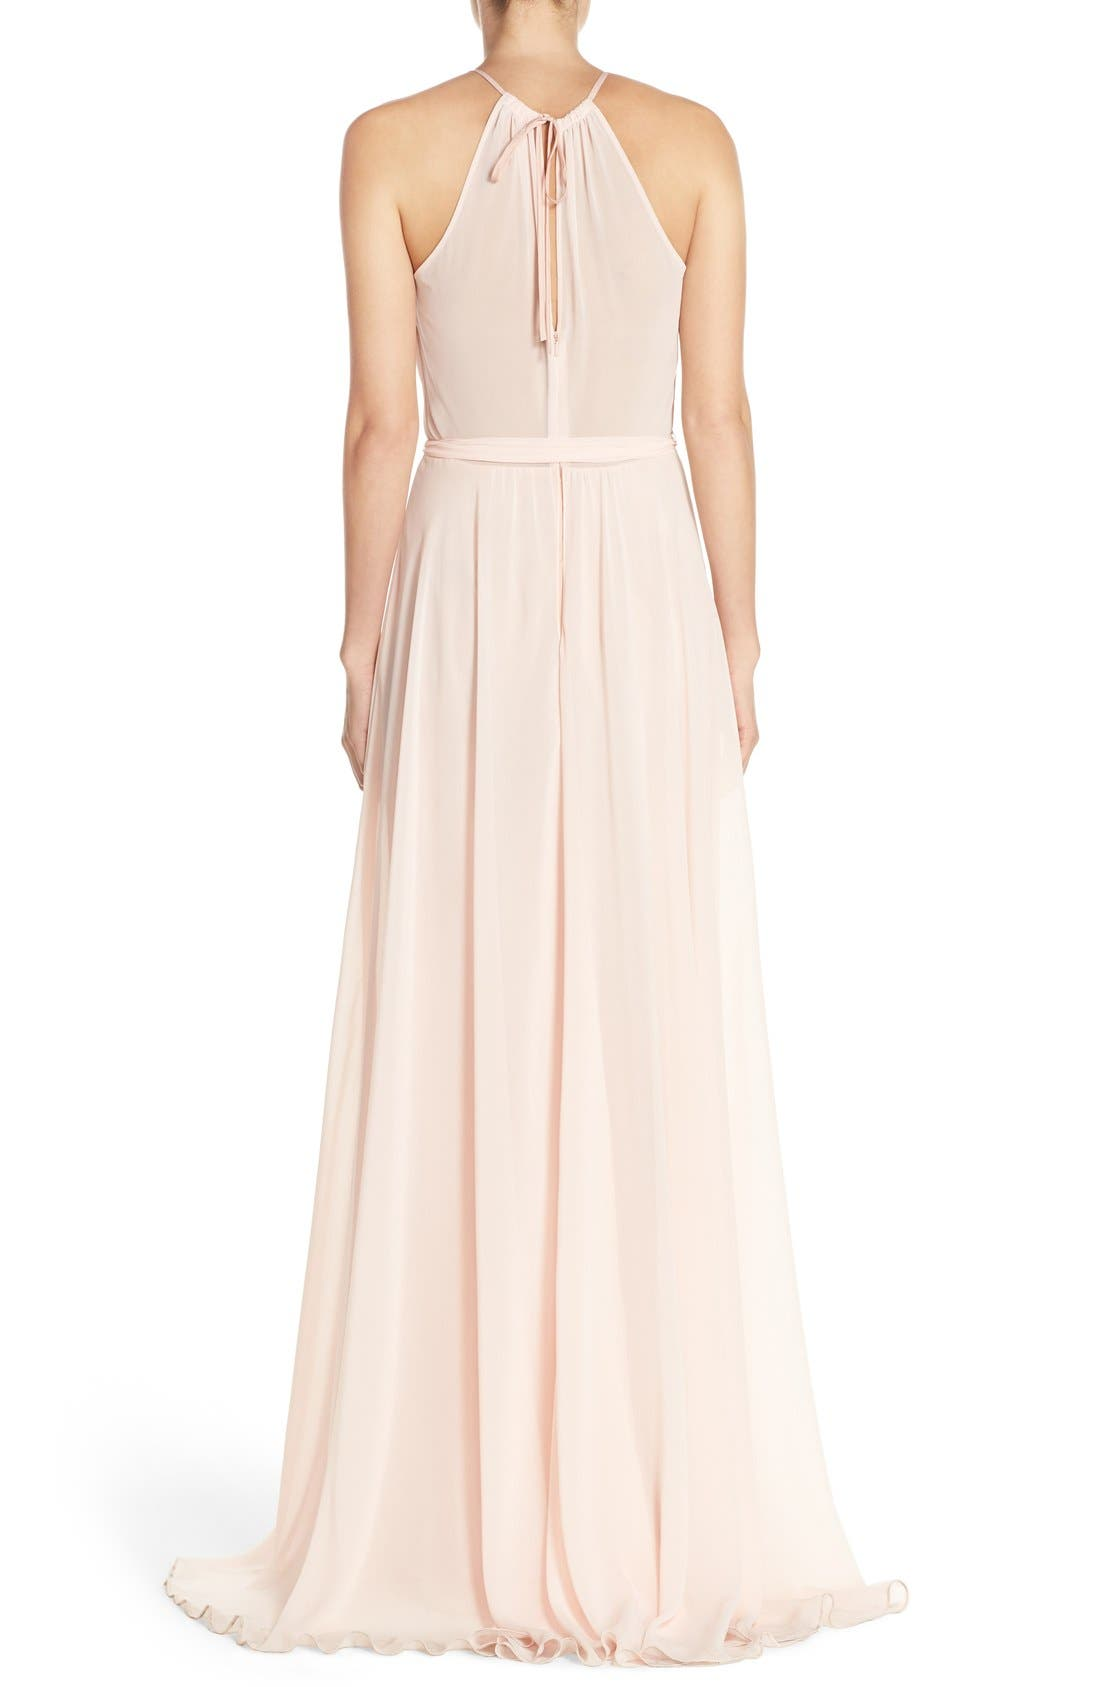 'Delaney' Belted A-Line Chiffon Halter Dress,                             Alternate thumbnail 2, color,                             Blush